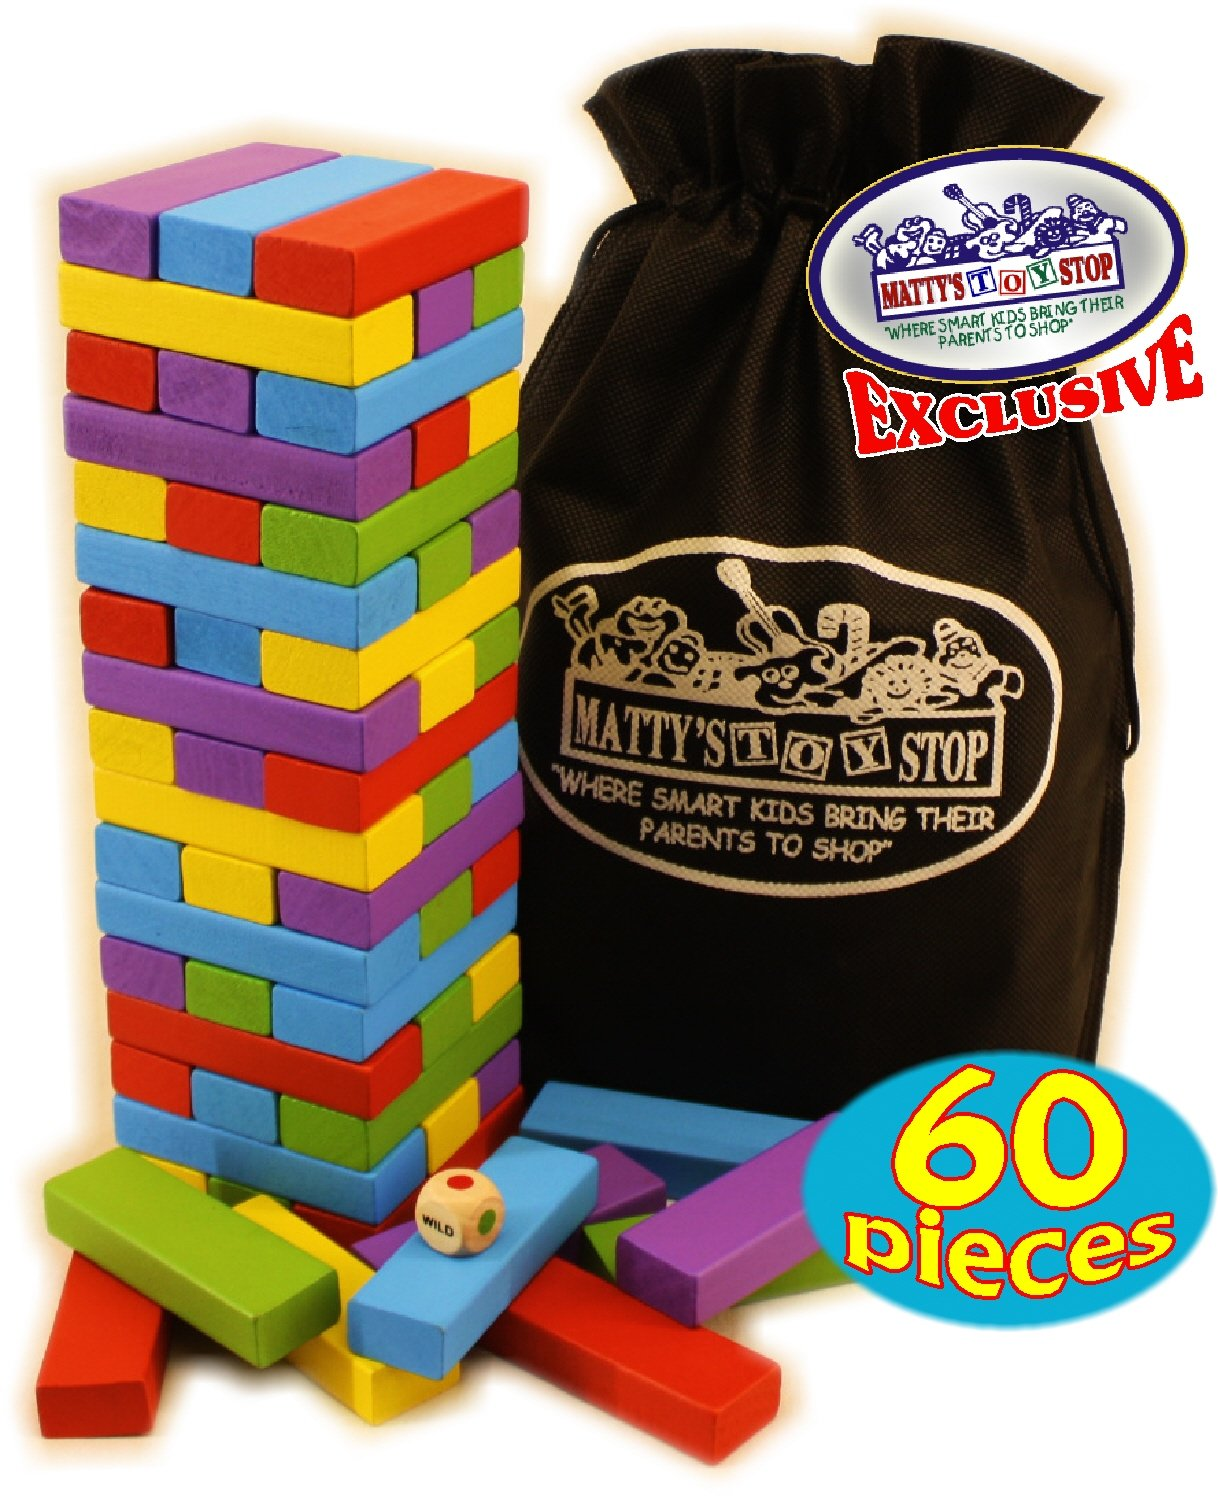 Matty's Mix-Up 60pc Large Colorful Wooden Tumble Tower Deluxe Stacking Game with Storage Bag by Matty's Toy Stop